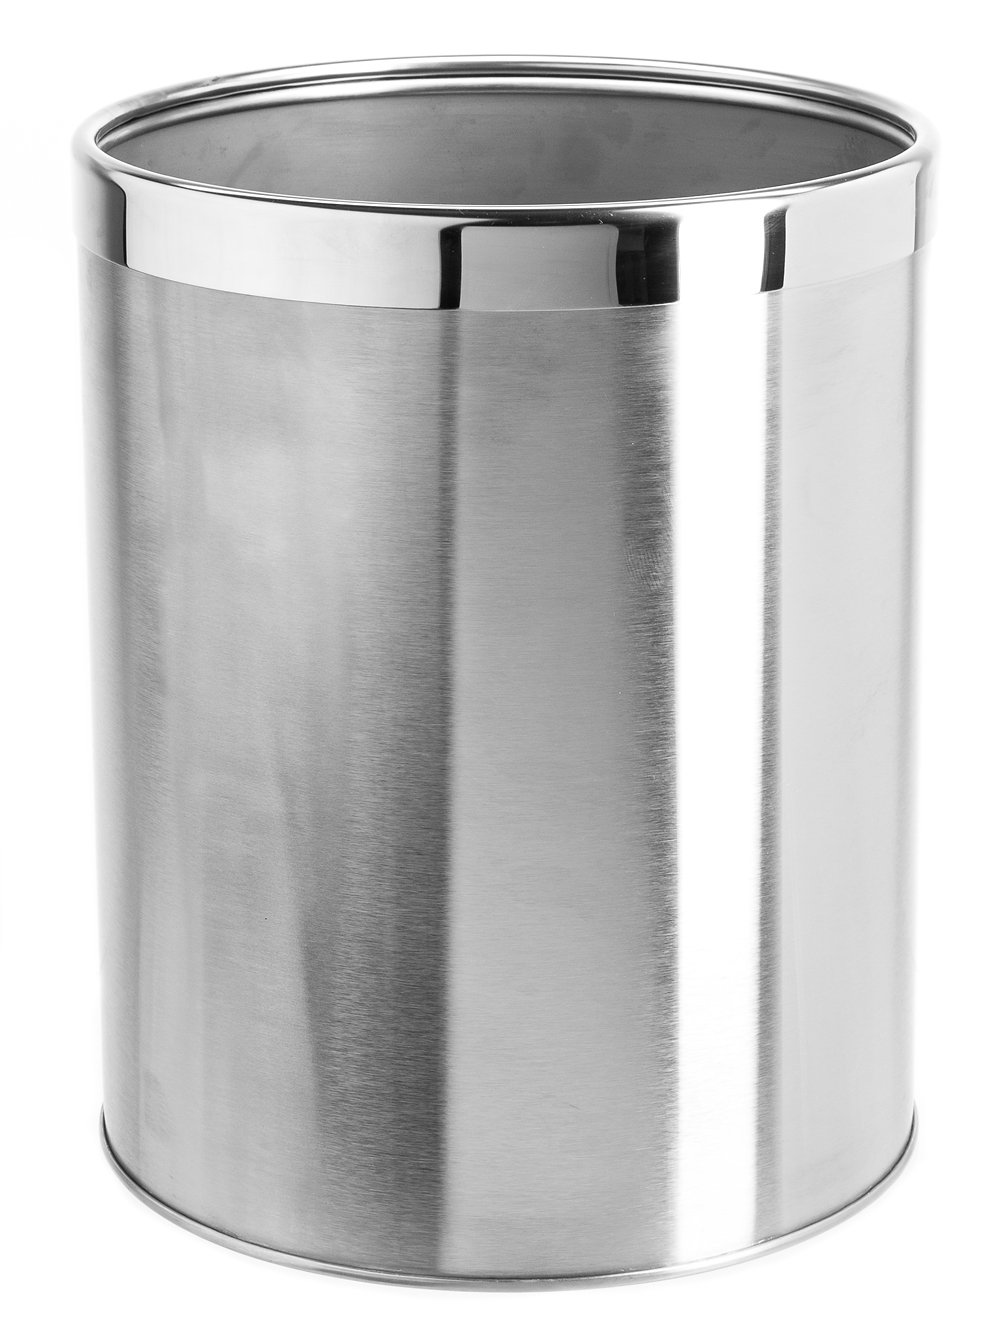 Bennett ''Detach-A-Ring'' Trash Can, Small Office Stainless Steel Wastebasket, Modern Home Décor, Round Shape (Dia. 9.6 x H11.8)